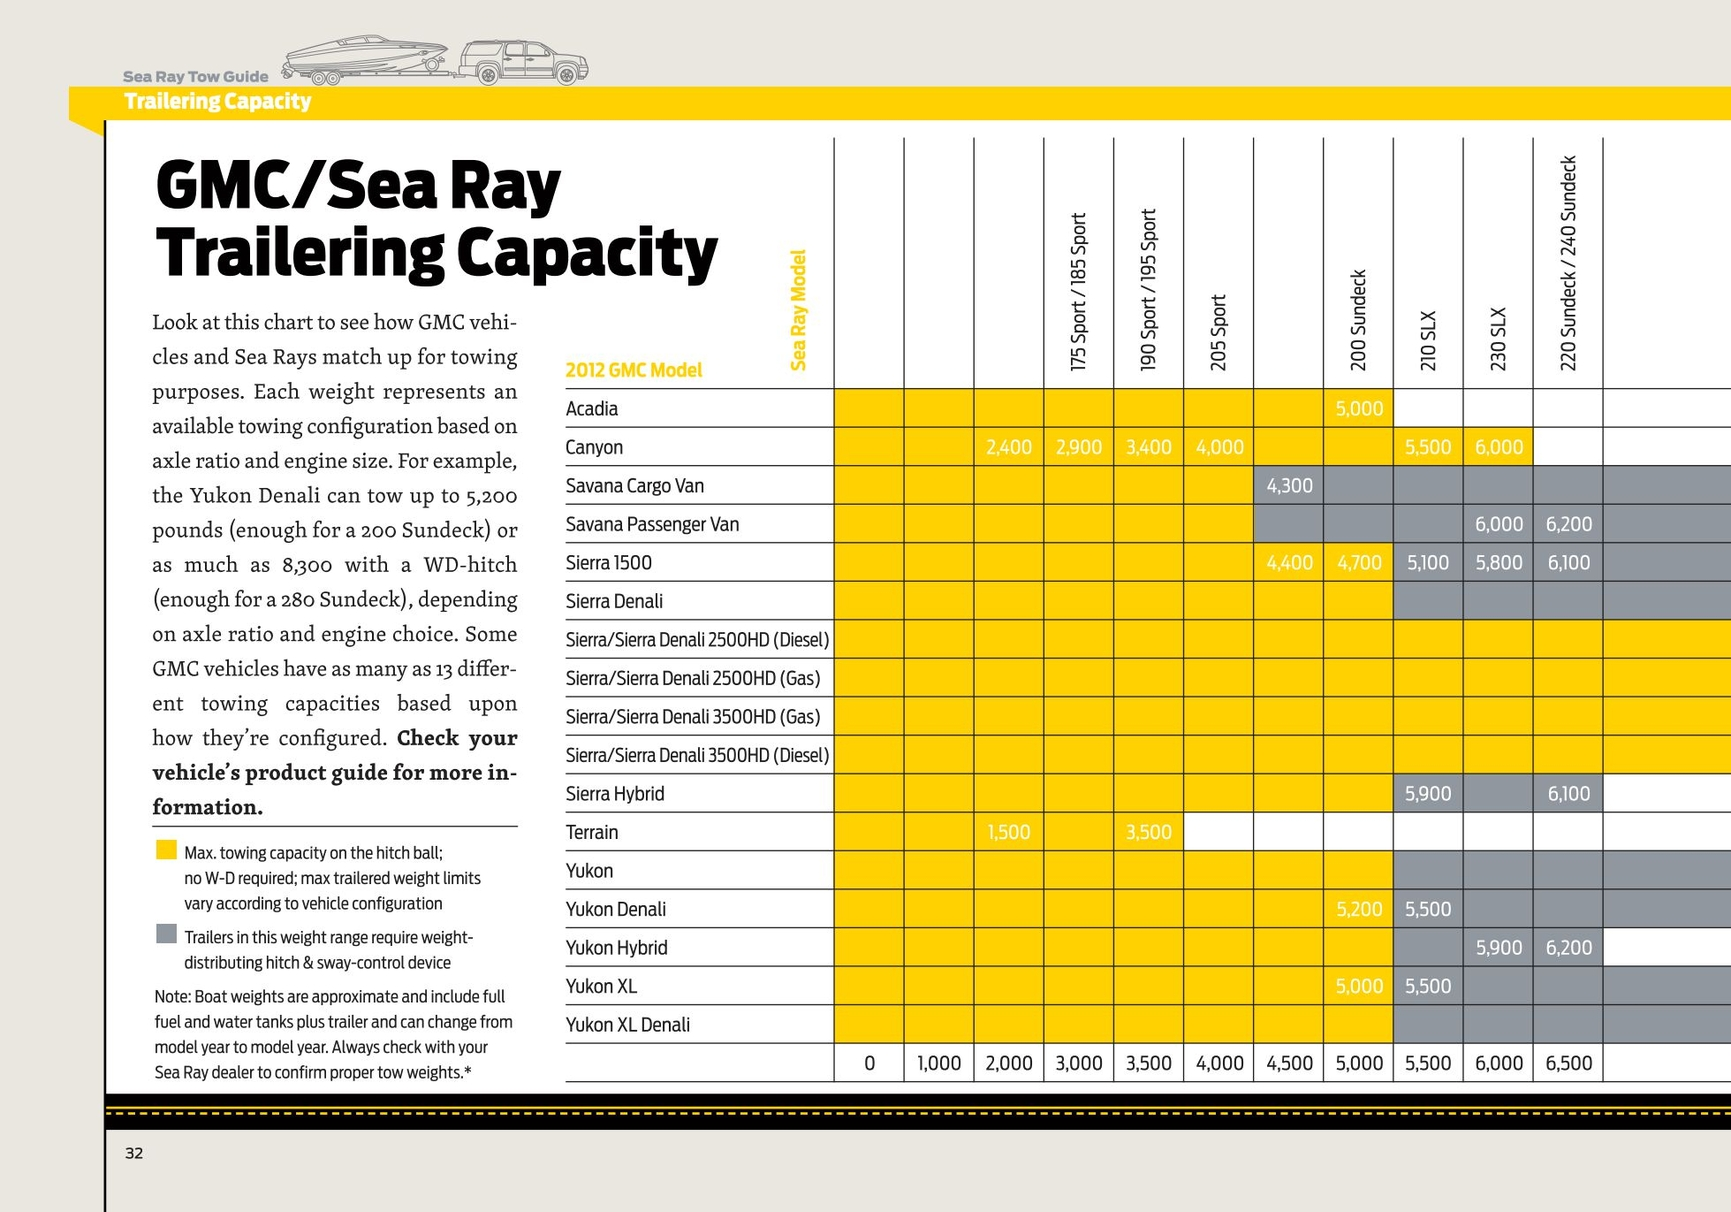 Searaytraileringguide2012 34 35 searaytraileringguide2012 page 34 trailering capacity sea ray tow guide gmcsea ray trailering capacity look at this chart to see how gmc vehicles and geenschuldenfo Image collections